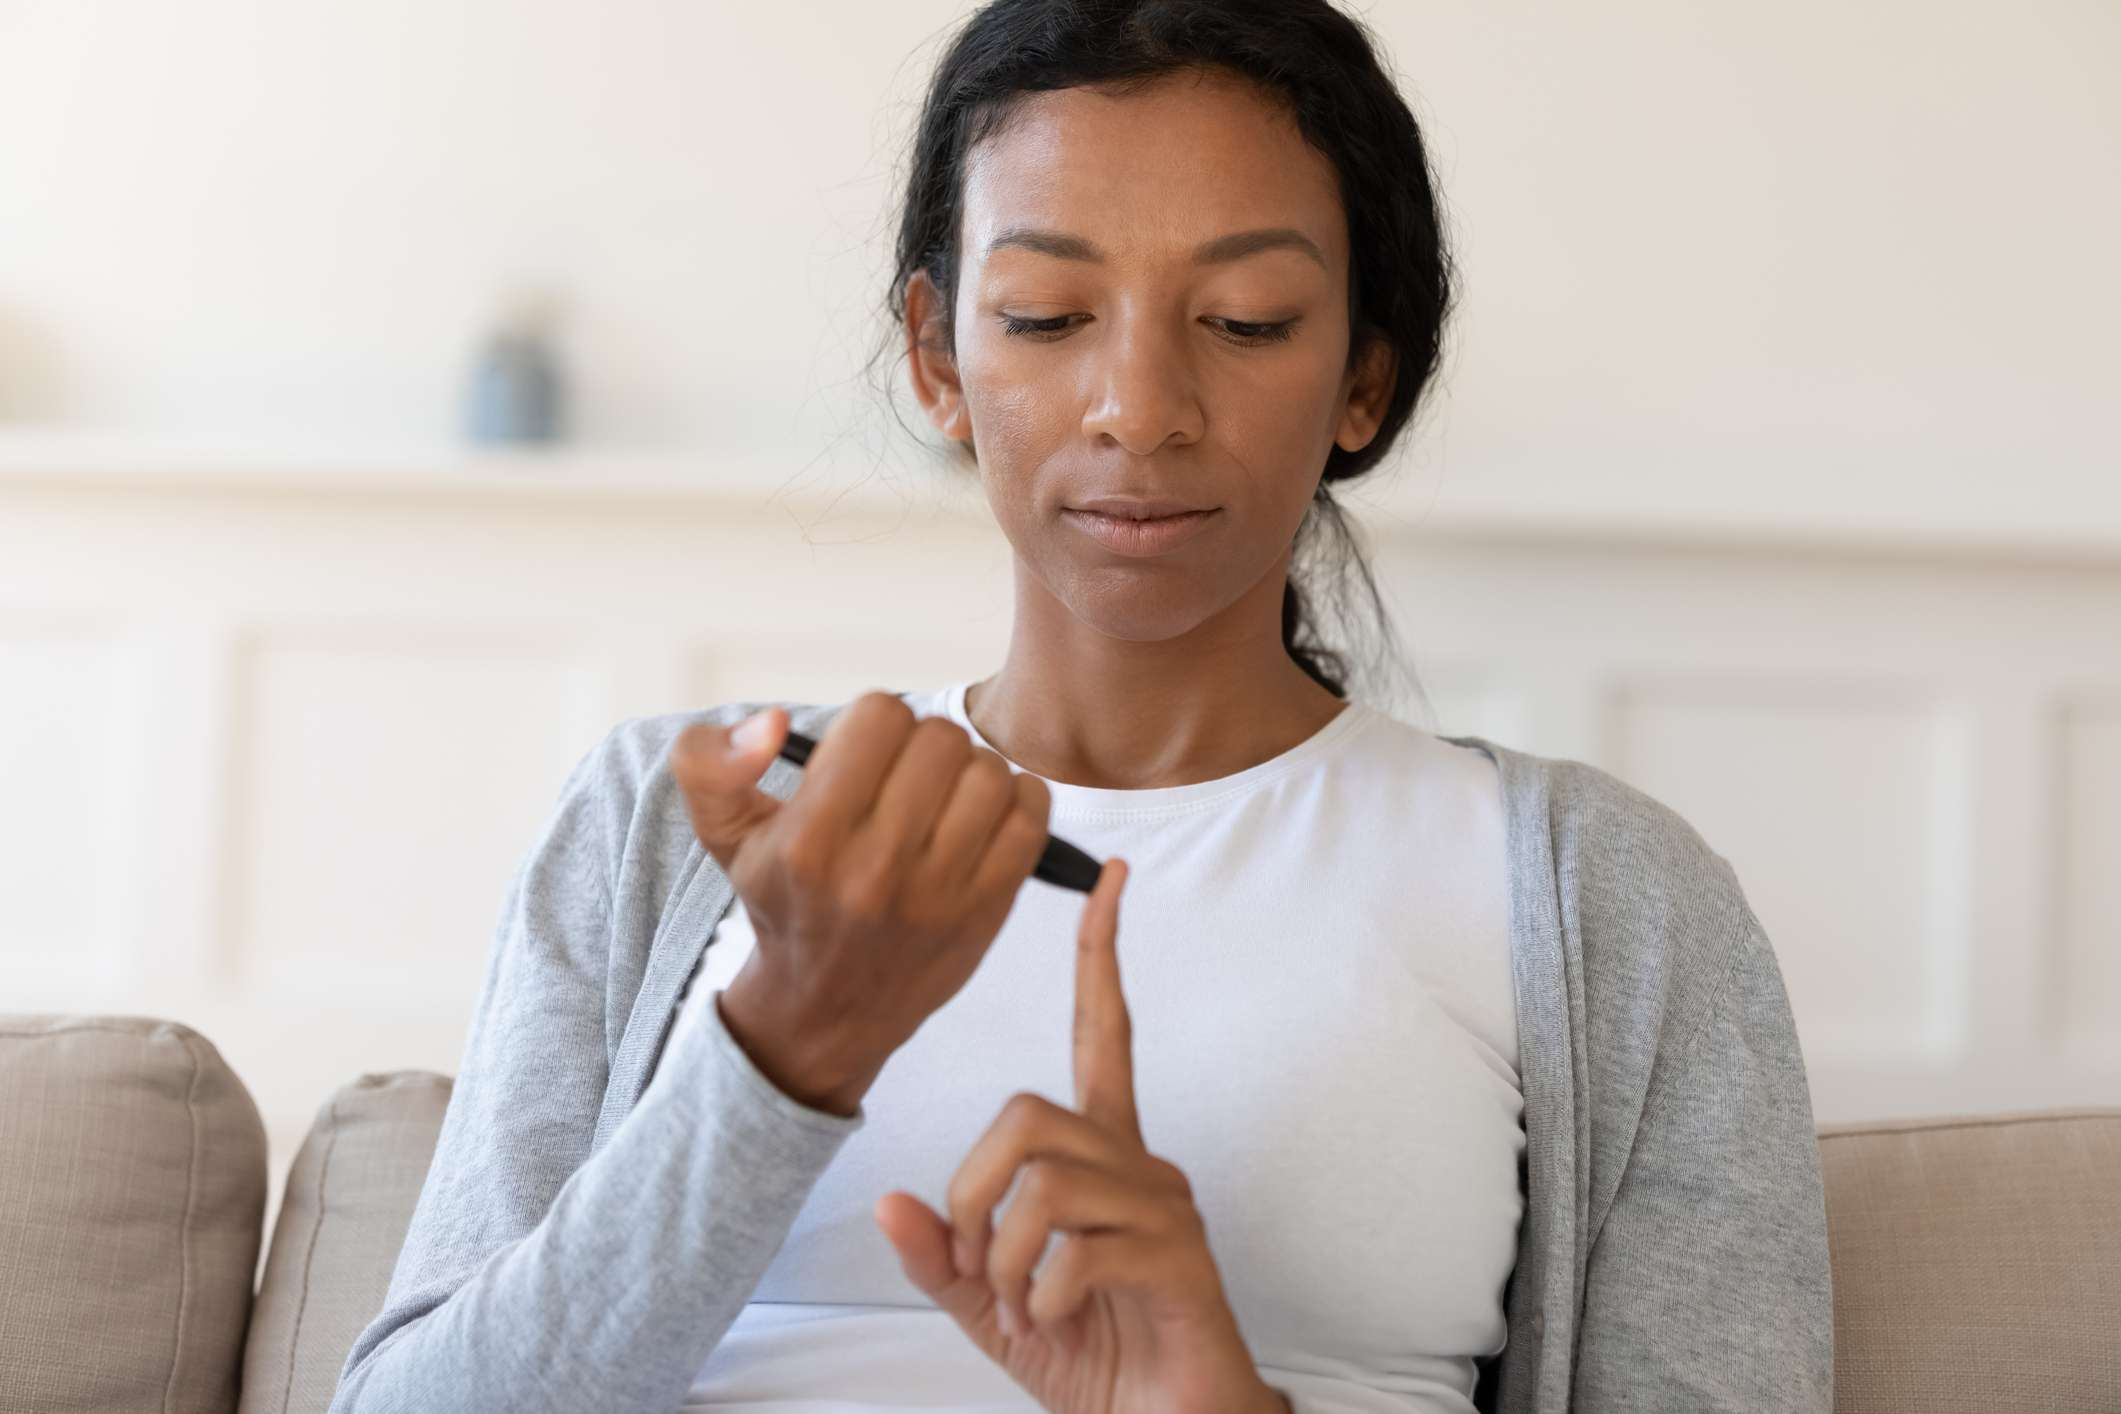 Woman who is hyperglycemic pricking her finger for a blood test.